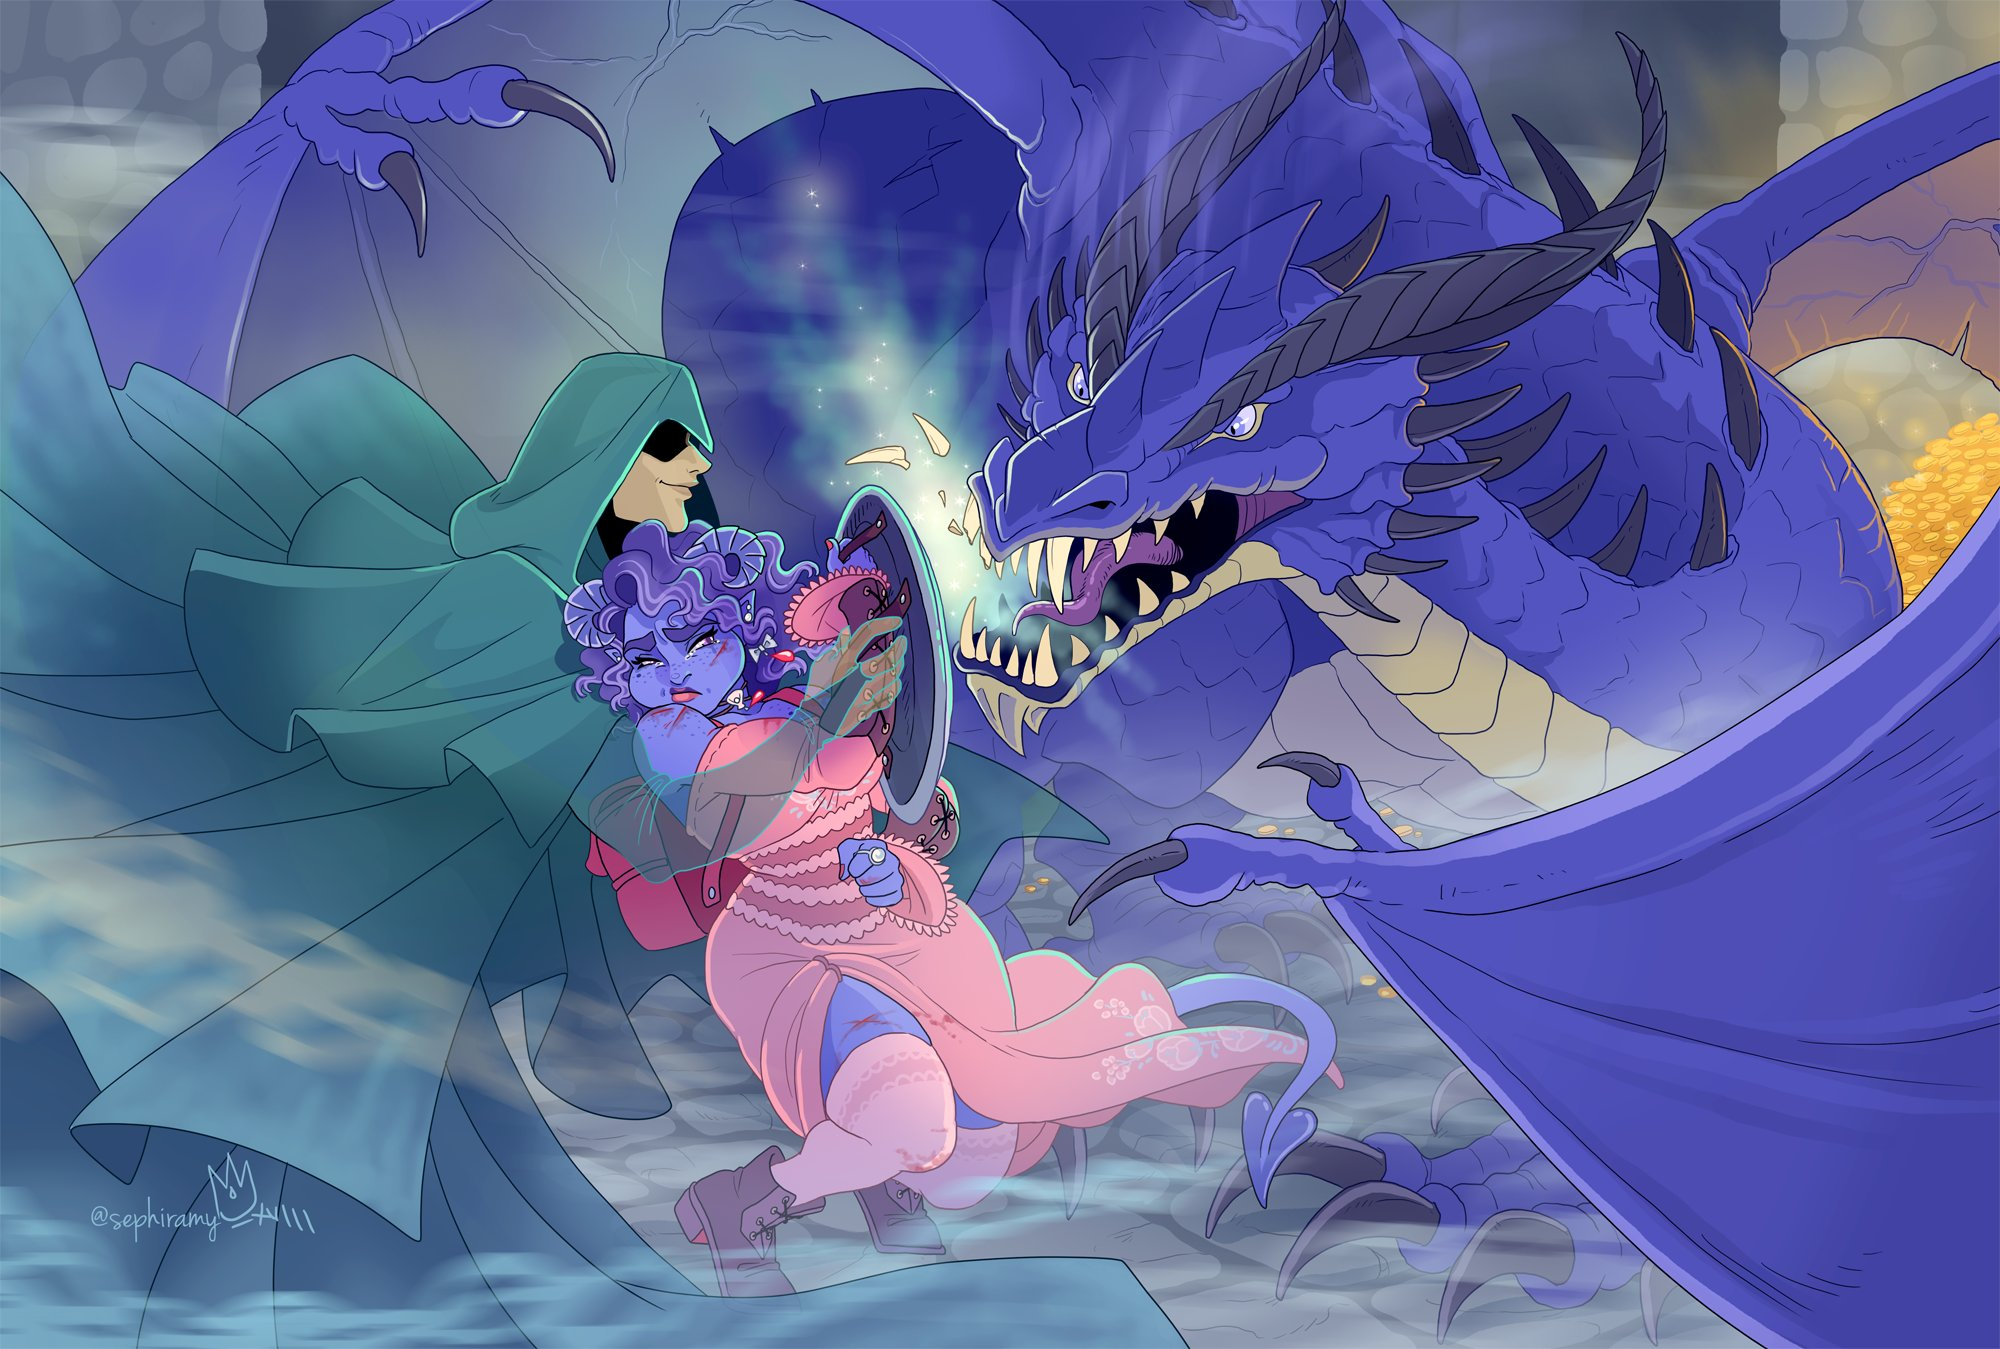 Jester and The Traveler vs the blue dragon by Amy King.jpeg